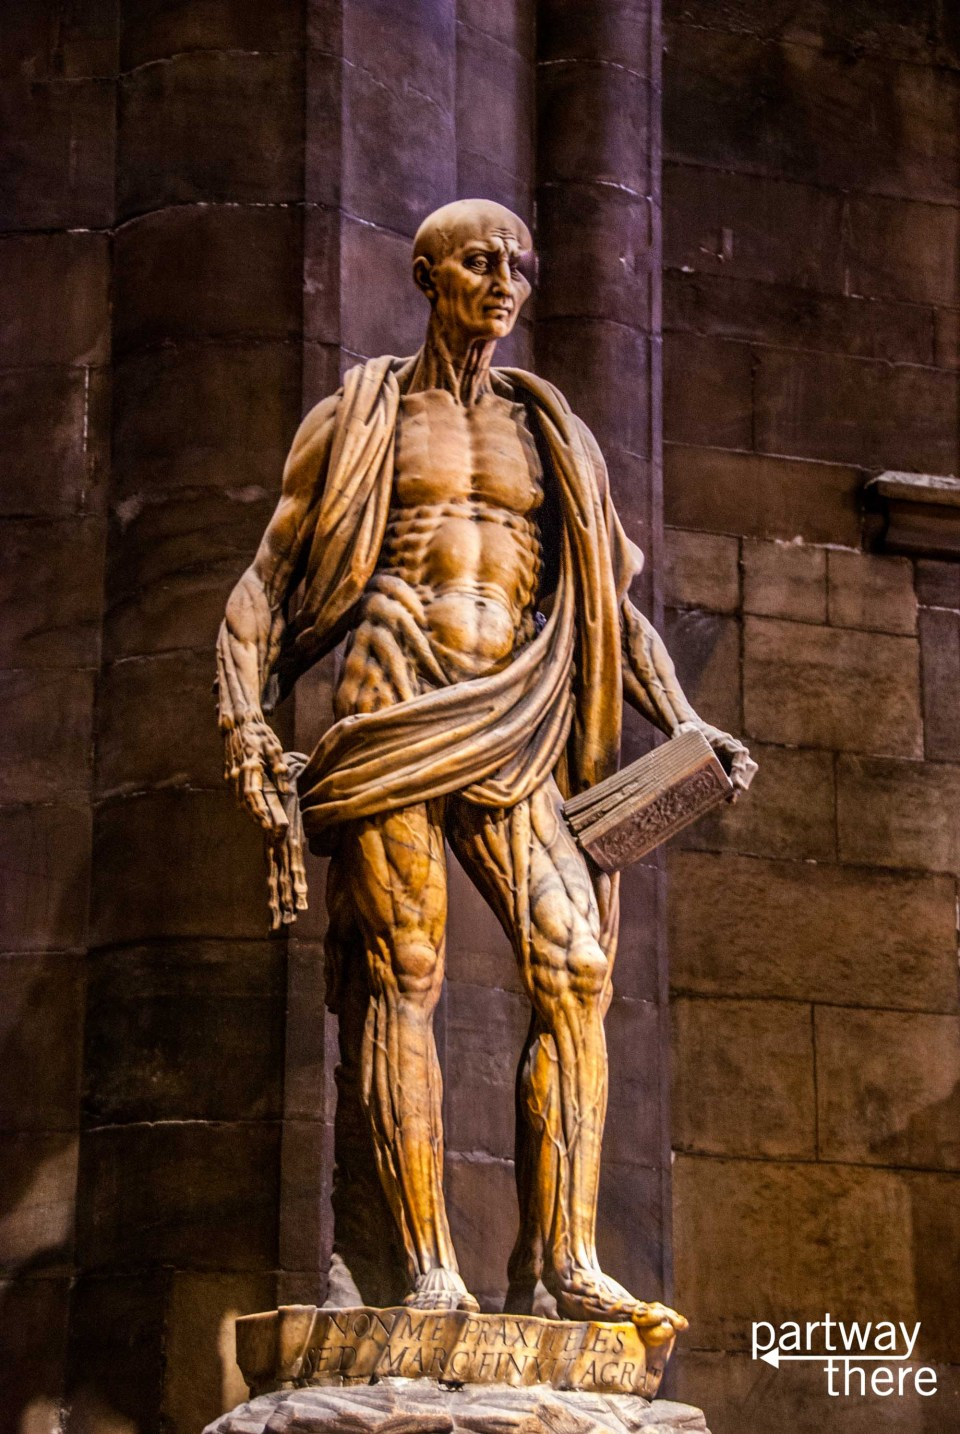 incredibly complex and detailed statue inside Milan Cathedral